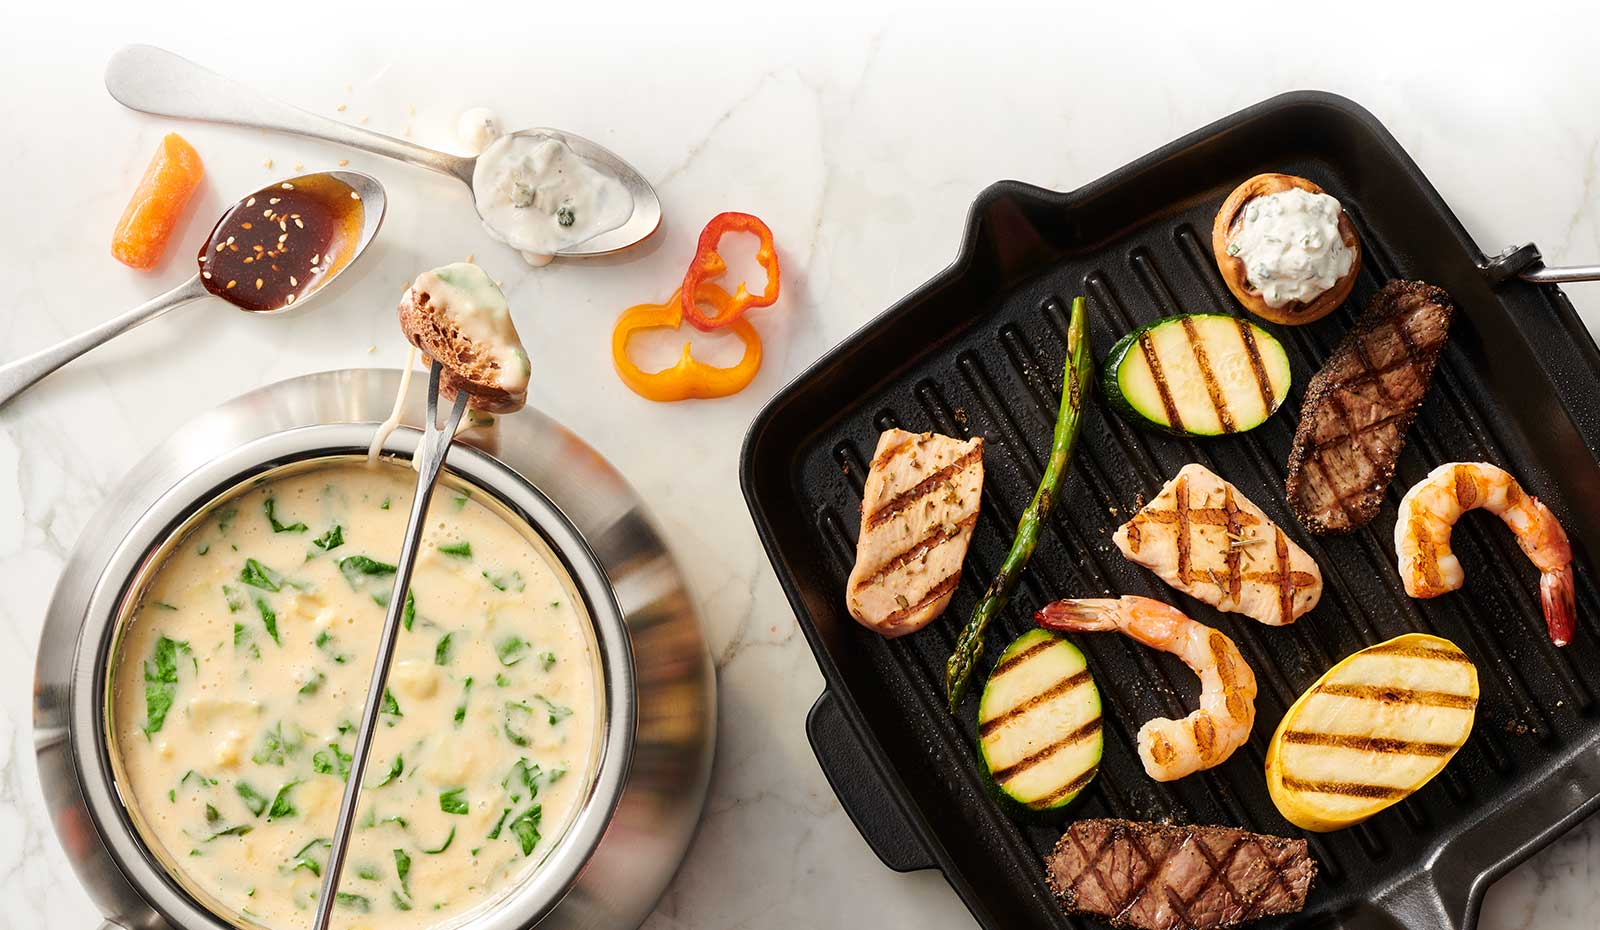 Grill Cooking Style and Cheese Fondue